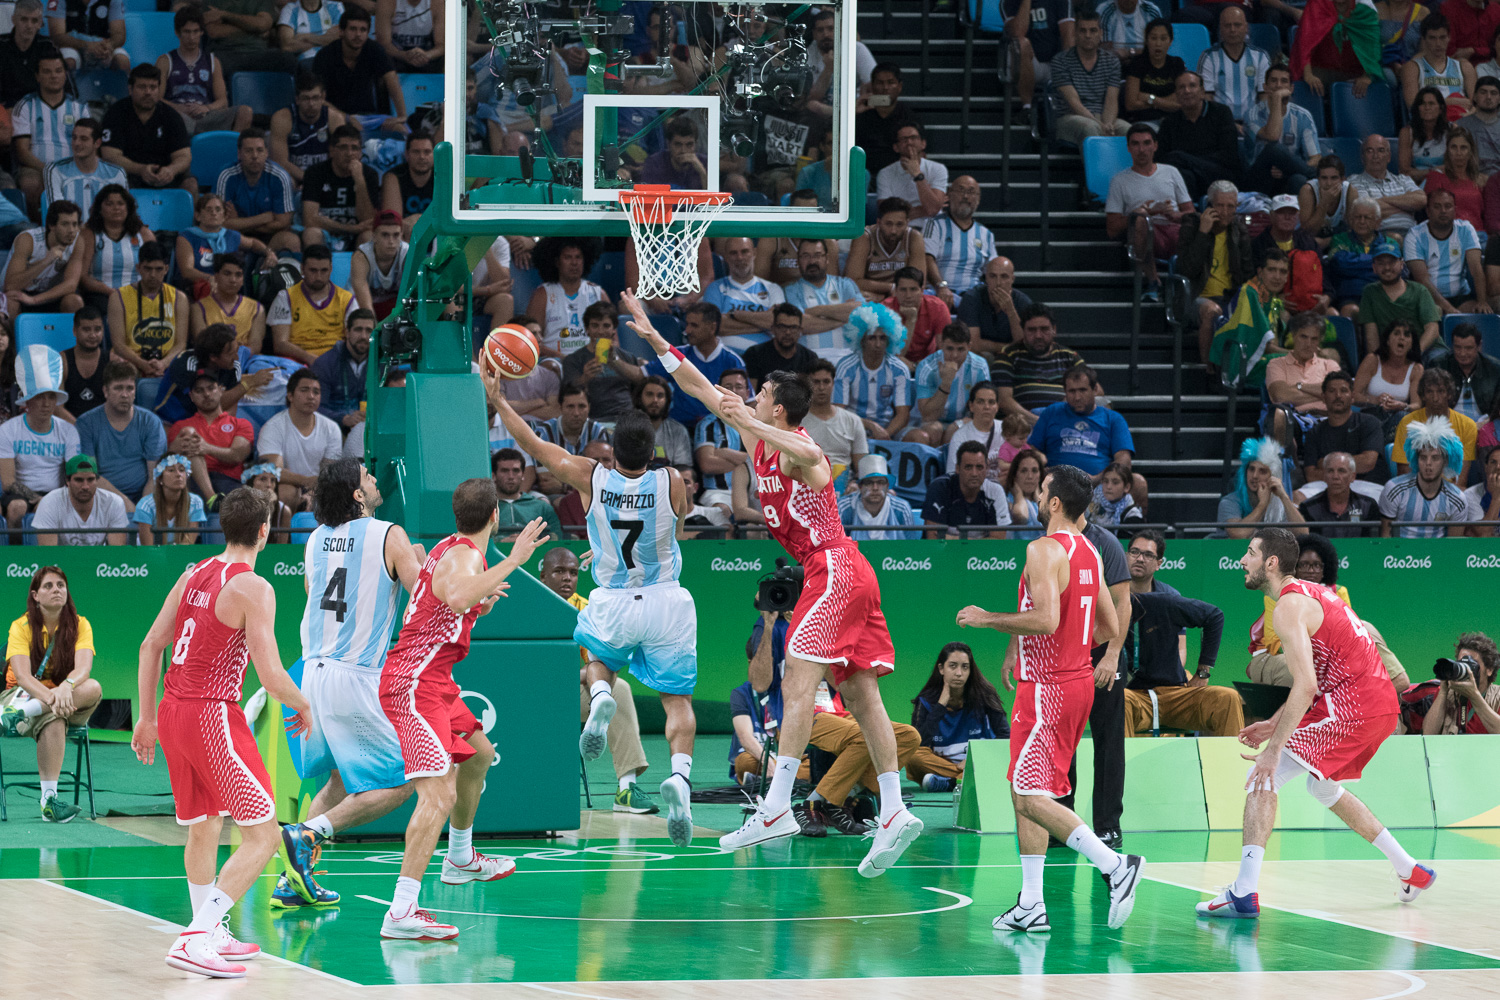 ARG vs CRO in Men's Basketball